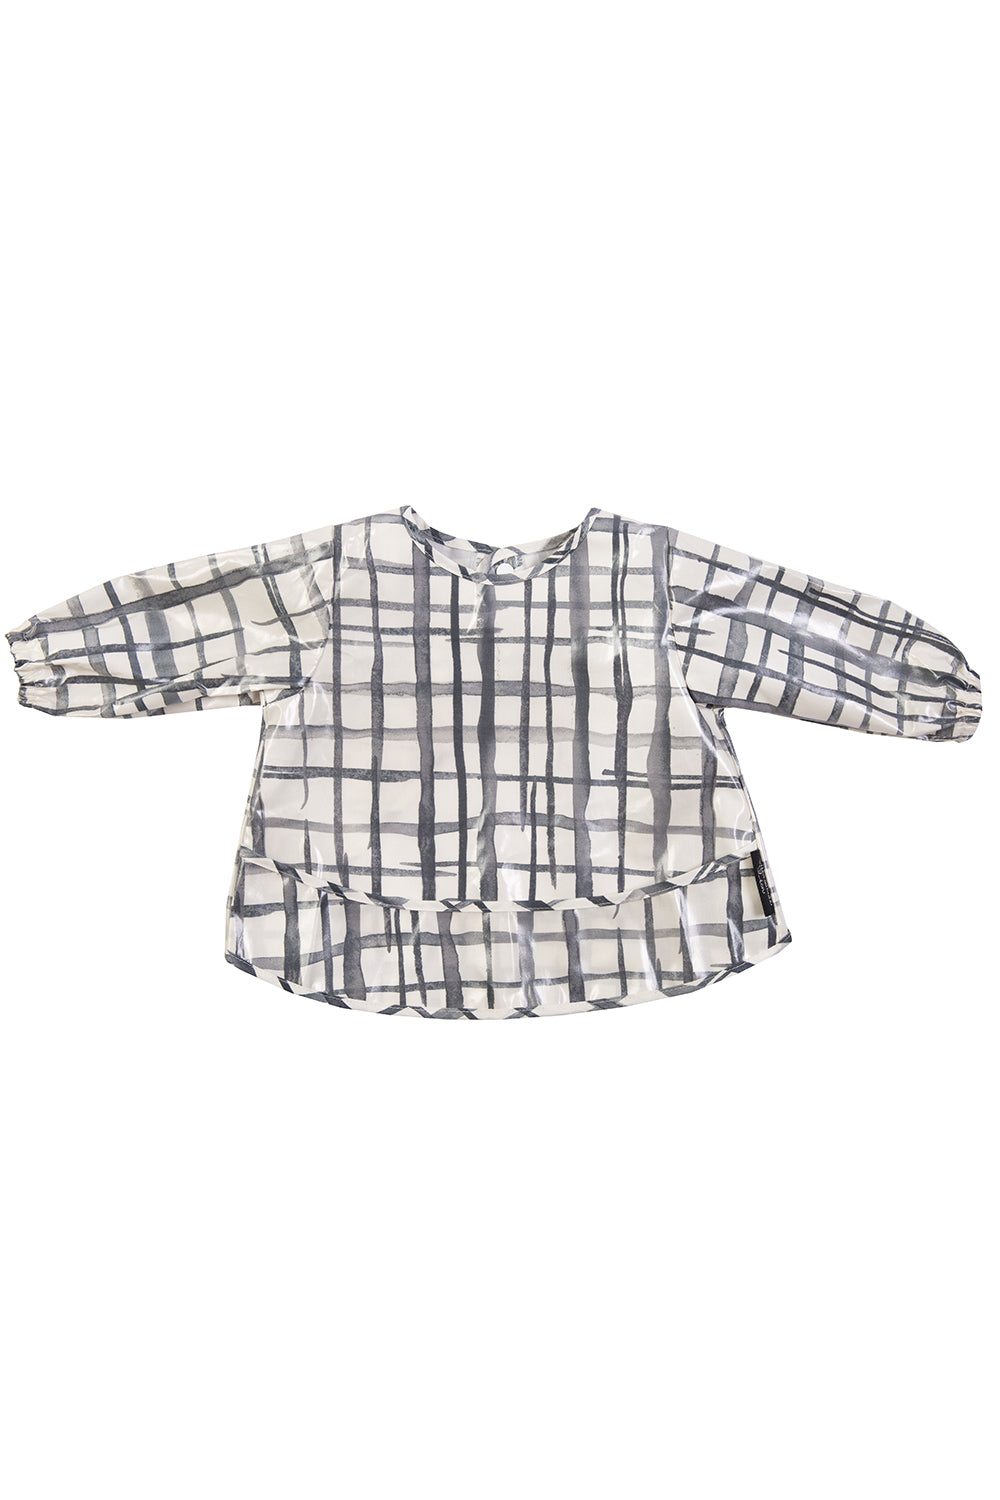 Swedish Check Long Sleeve Smock (Pre-Order Only)